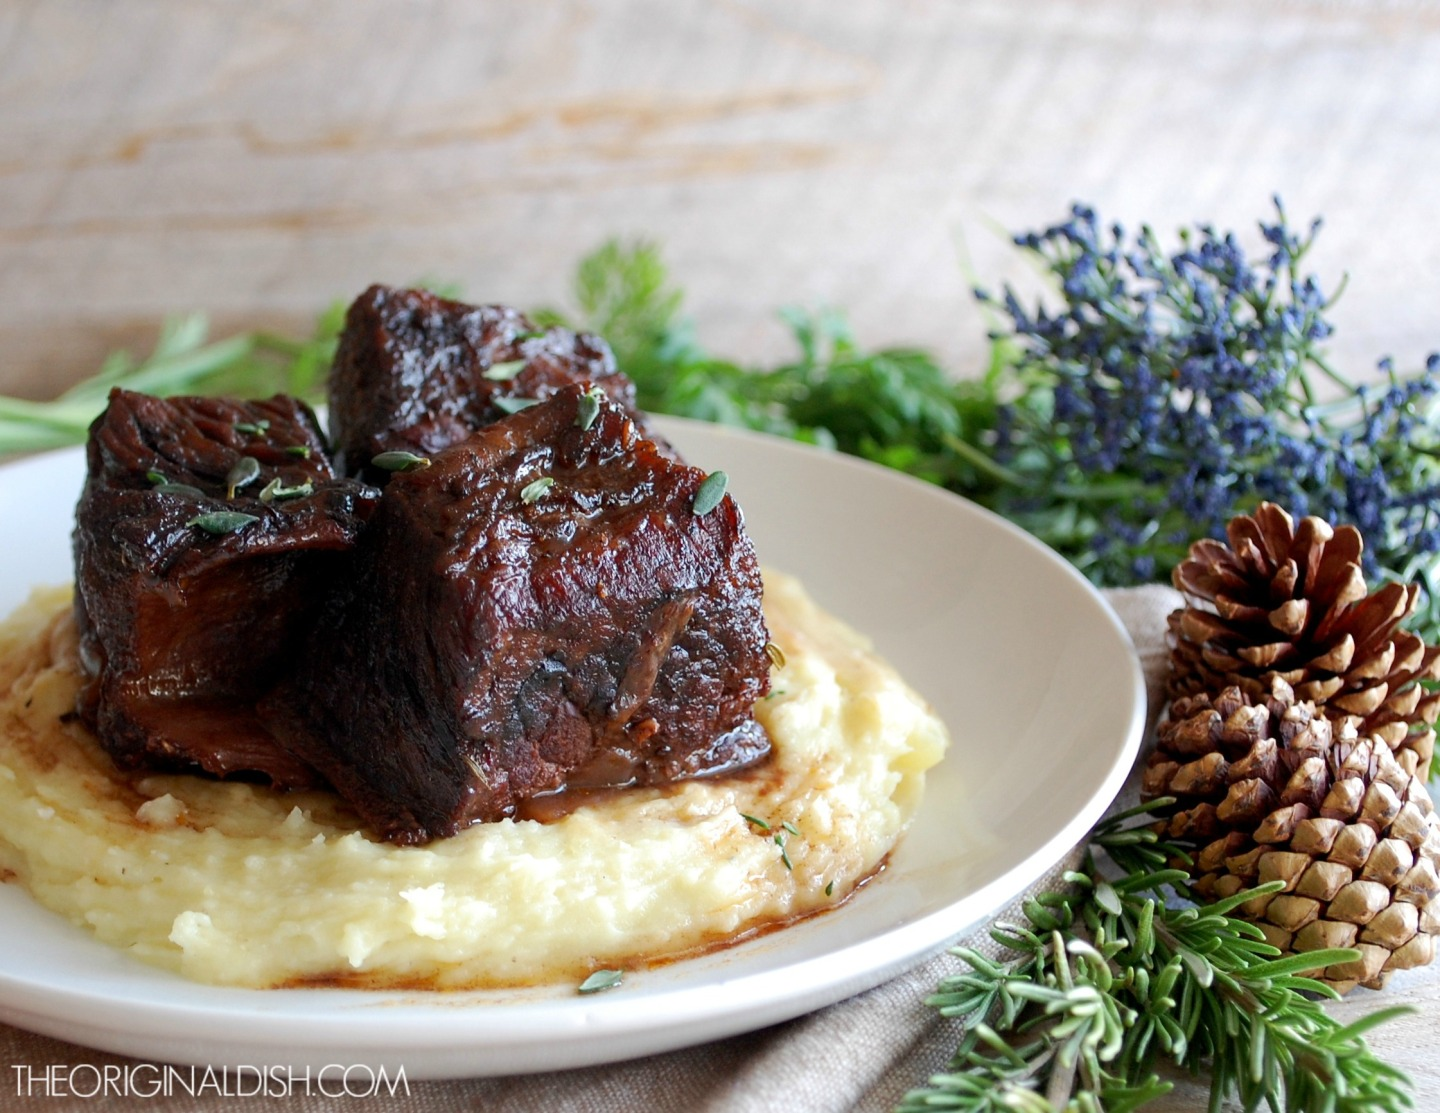 Braised Short Ribs with Caramelized Horseradish Potato Puree